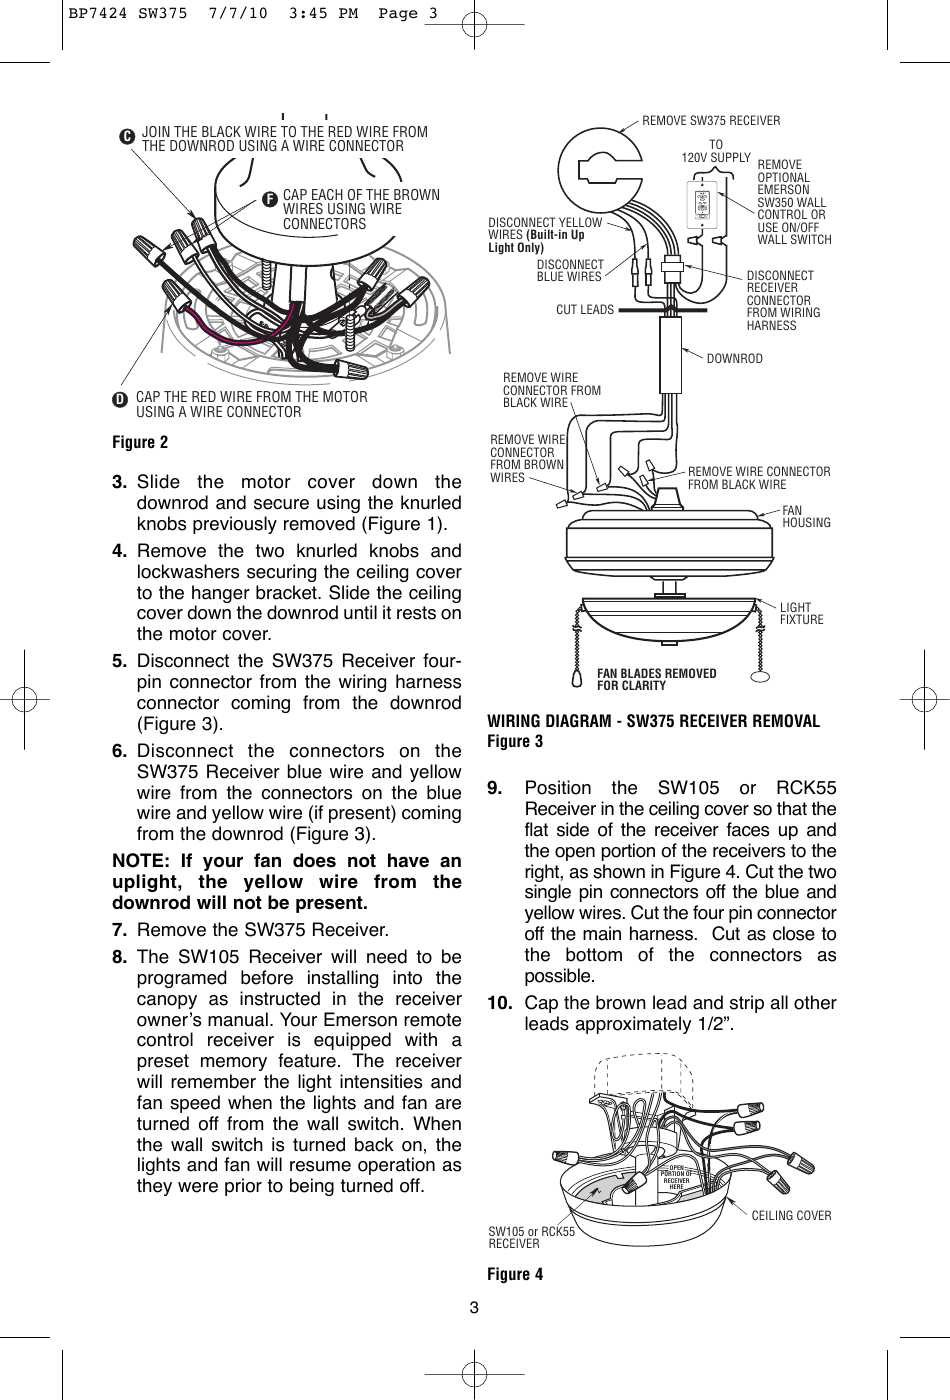 Emerson Sw375 Owners Manual BP7424